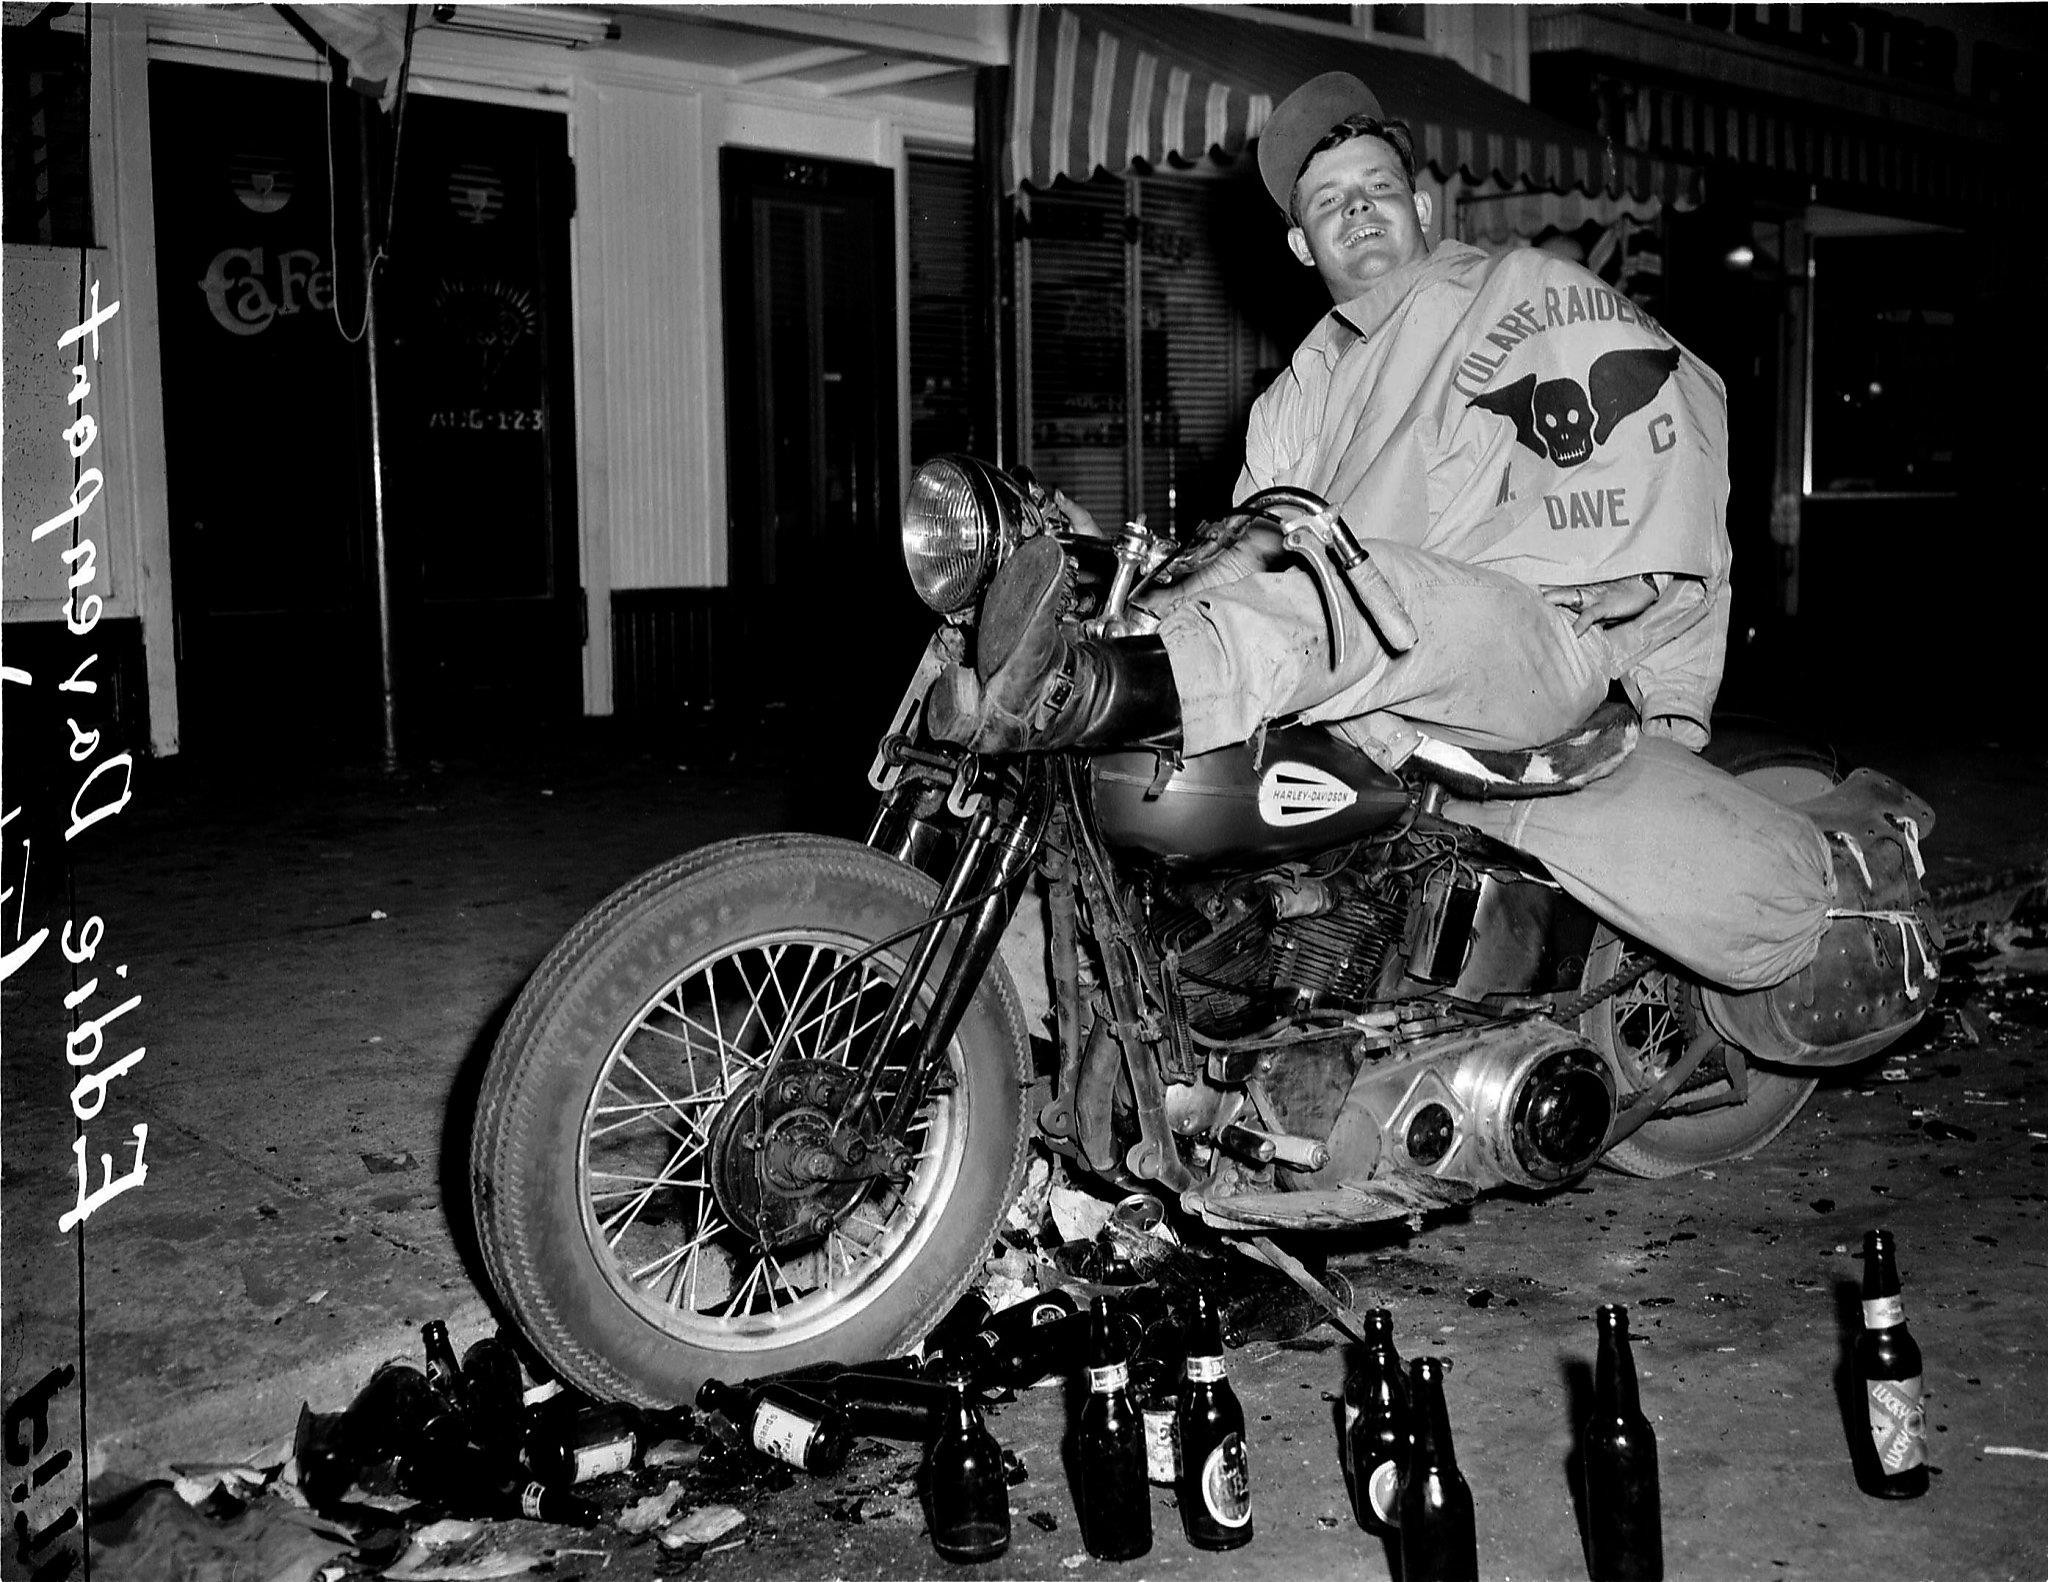 The famous 'Eddie Davenport' image from the Hillister 'Riots' in California, July 4th, 1947